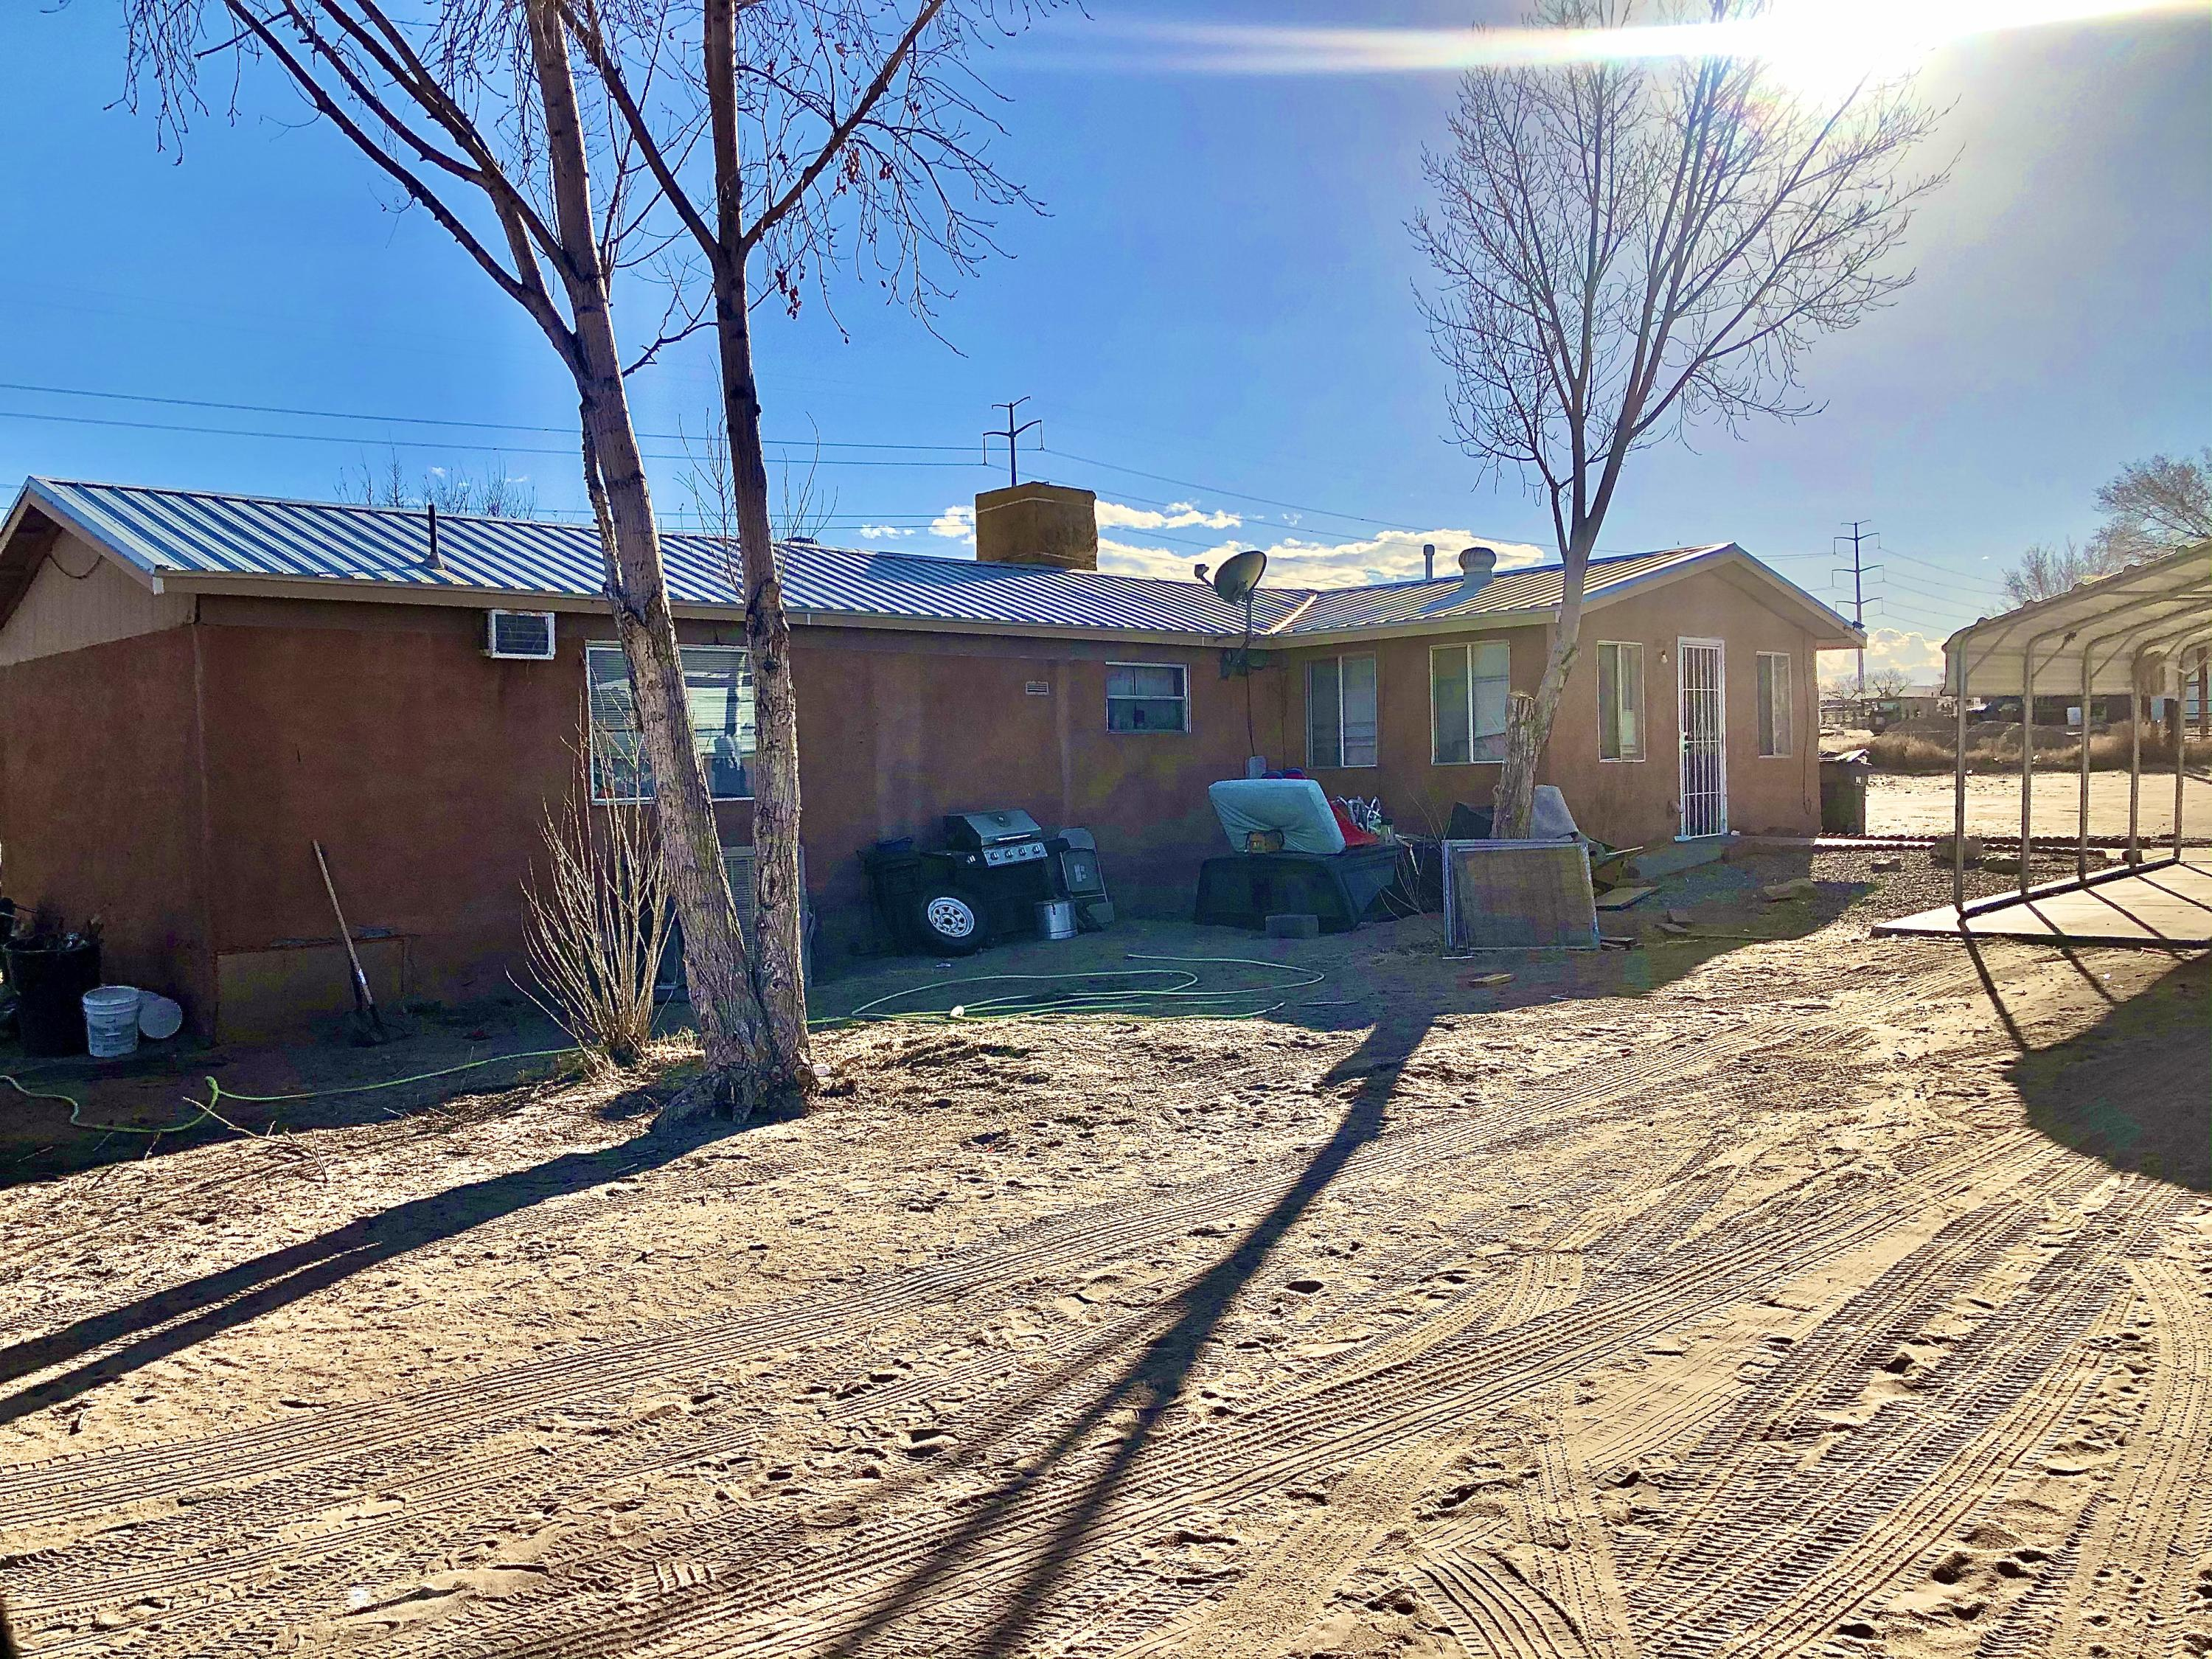 20 ACRE RANCH WITH RODEO CORRALS AND STALLS, INCLUDES THREE HOME$ ONE TRAILER HOME, ONE (1987)MANUFACTURED HOME, ONE DETACHED REGULAR HOME. OVER 10 BEDROOMS TOTAL!! WHAT AN OPPORUNITY!!!..MAKE AN APPOINTMENT TODAY!